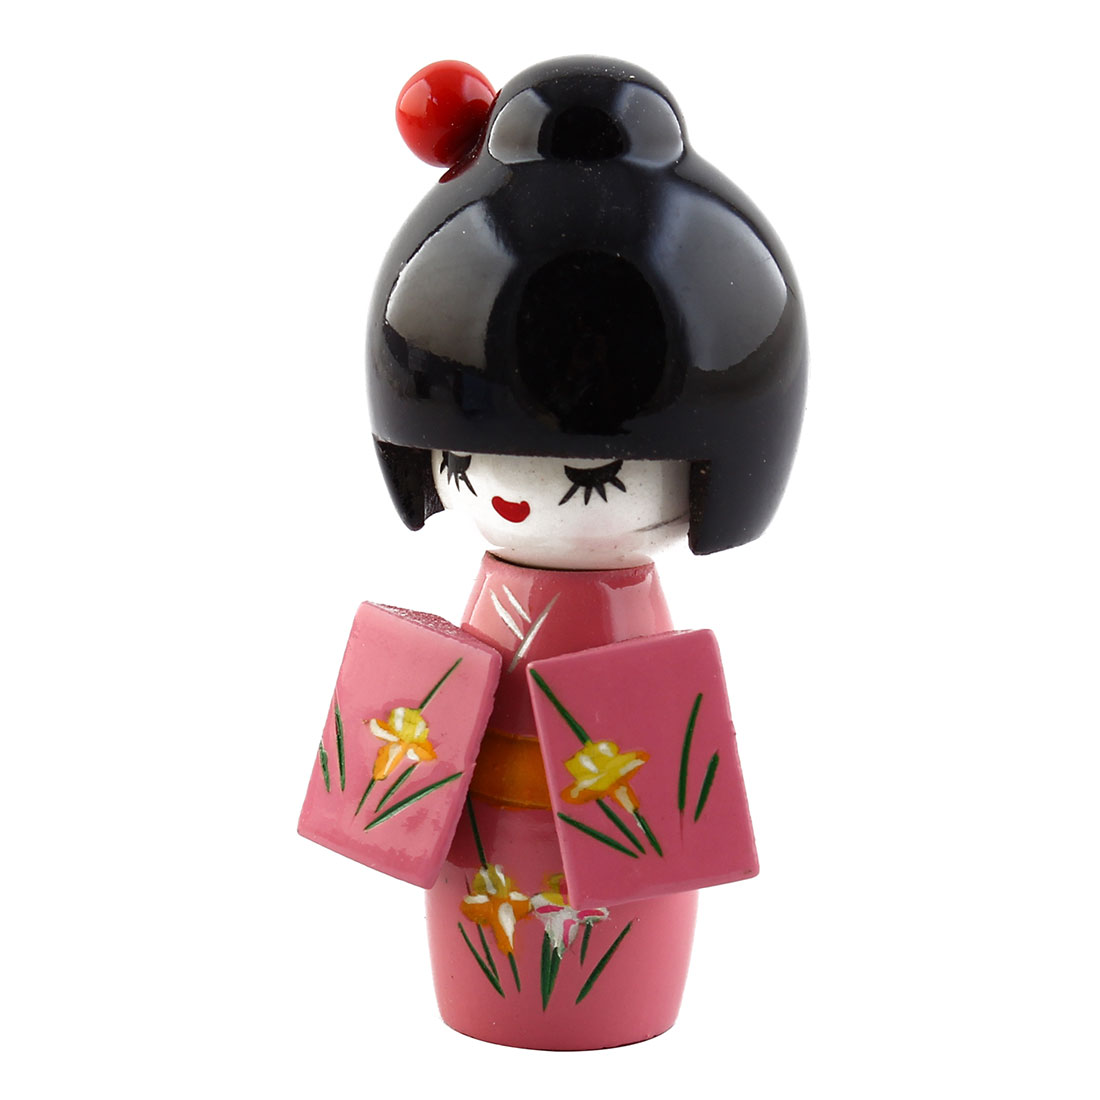 Red Hairpin Shyly Smiling Girl Japanese Kimono Kokeshi Doll Wooded Toy Desk Decoration